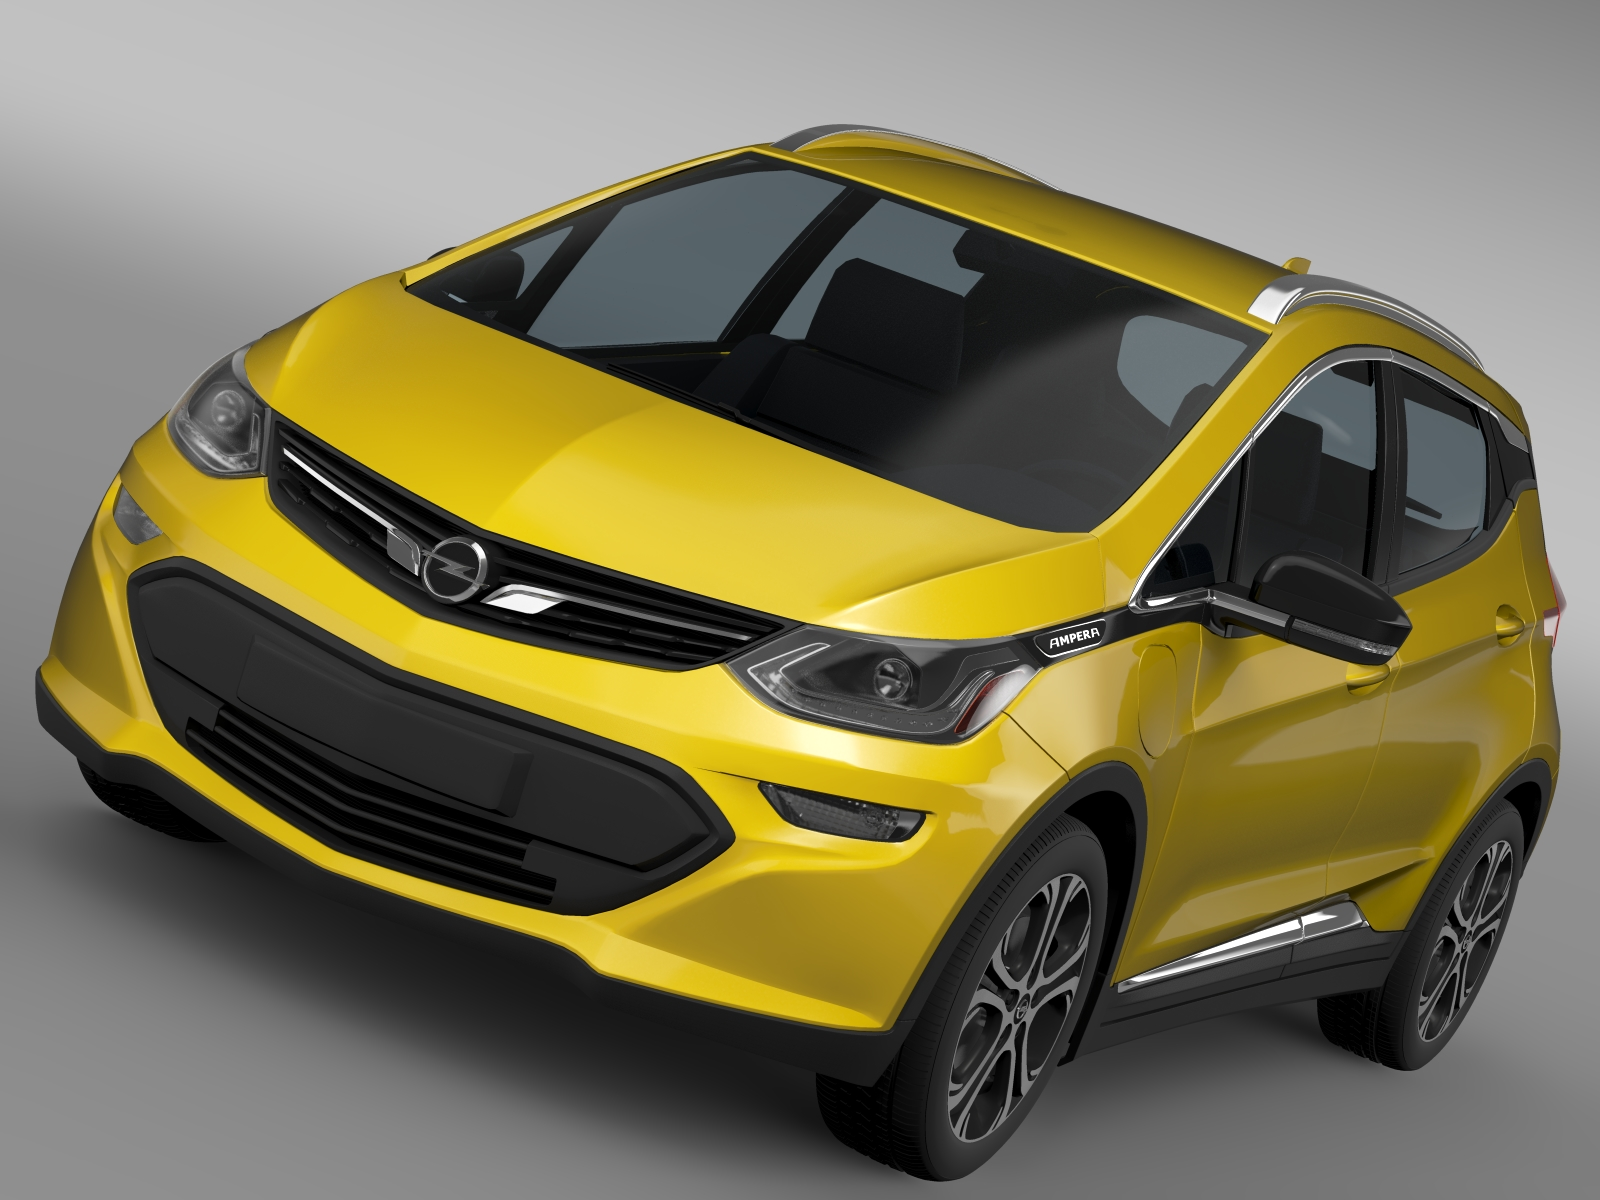 opel ampera e 2016 3d model buy opel ampera e 2016 3d model flatpyramid. Black Bedroom Furniture Sets. Home Design Ideas